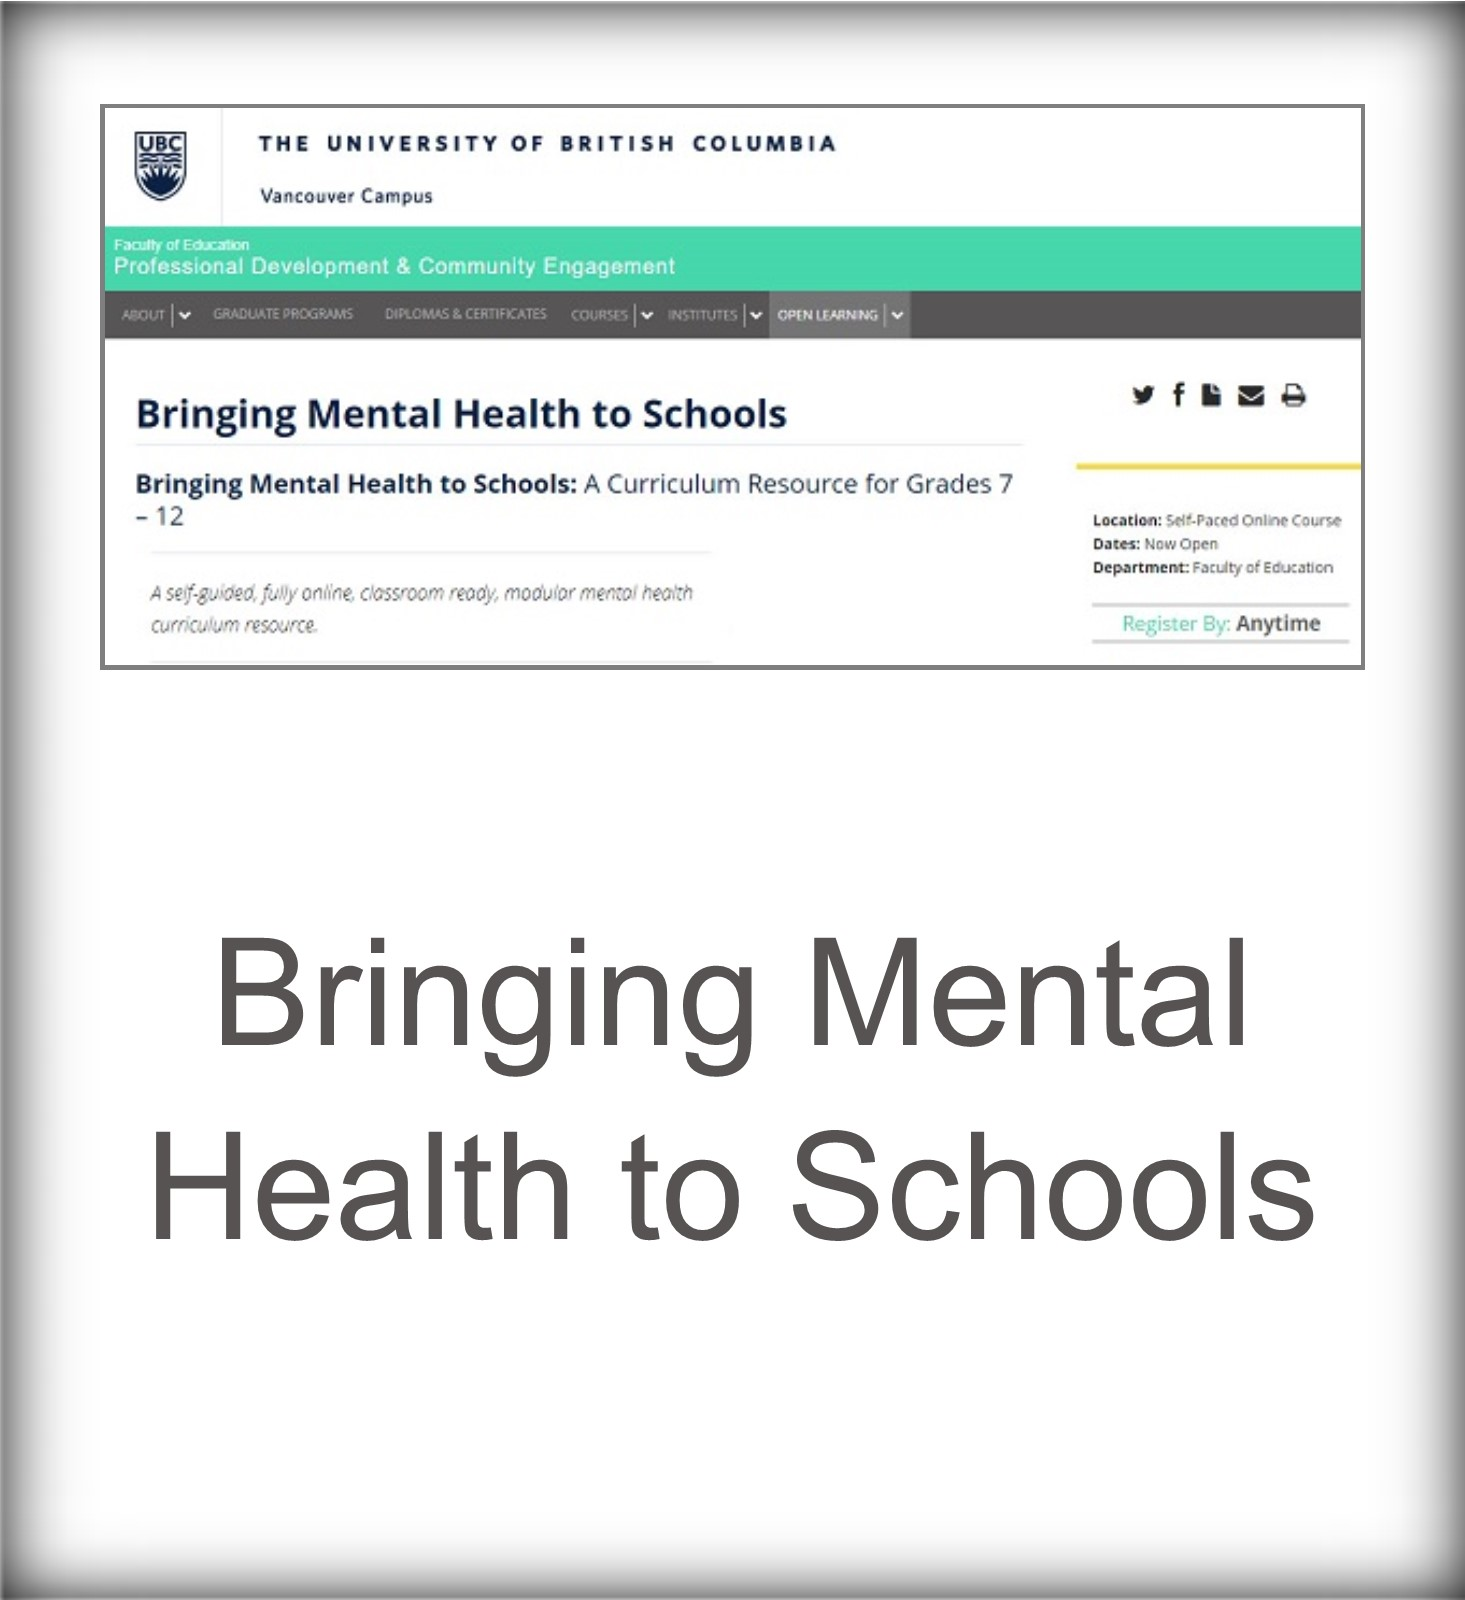 Bringing Mental Health to Schools